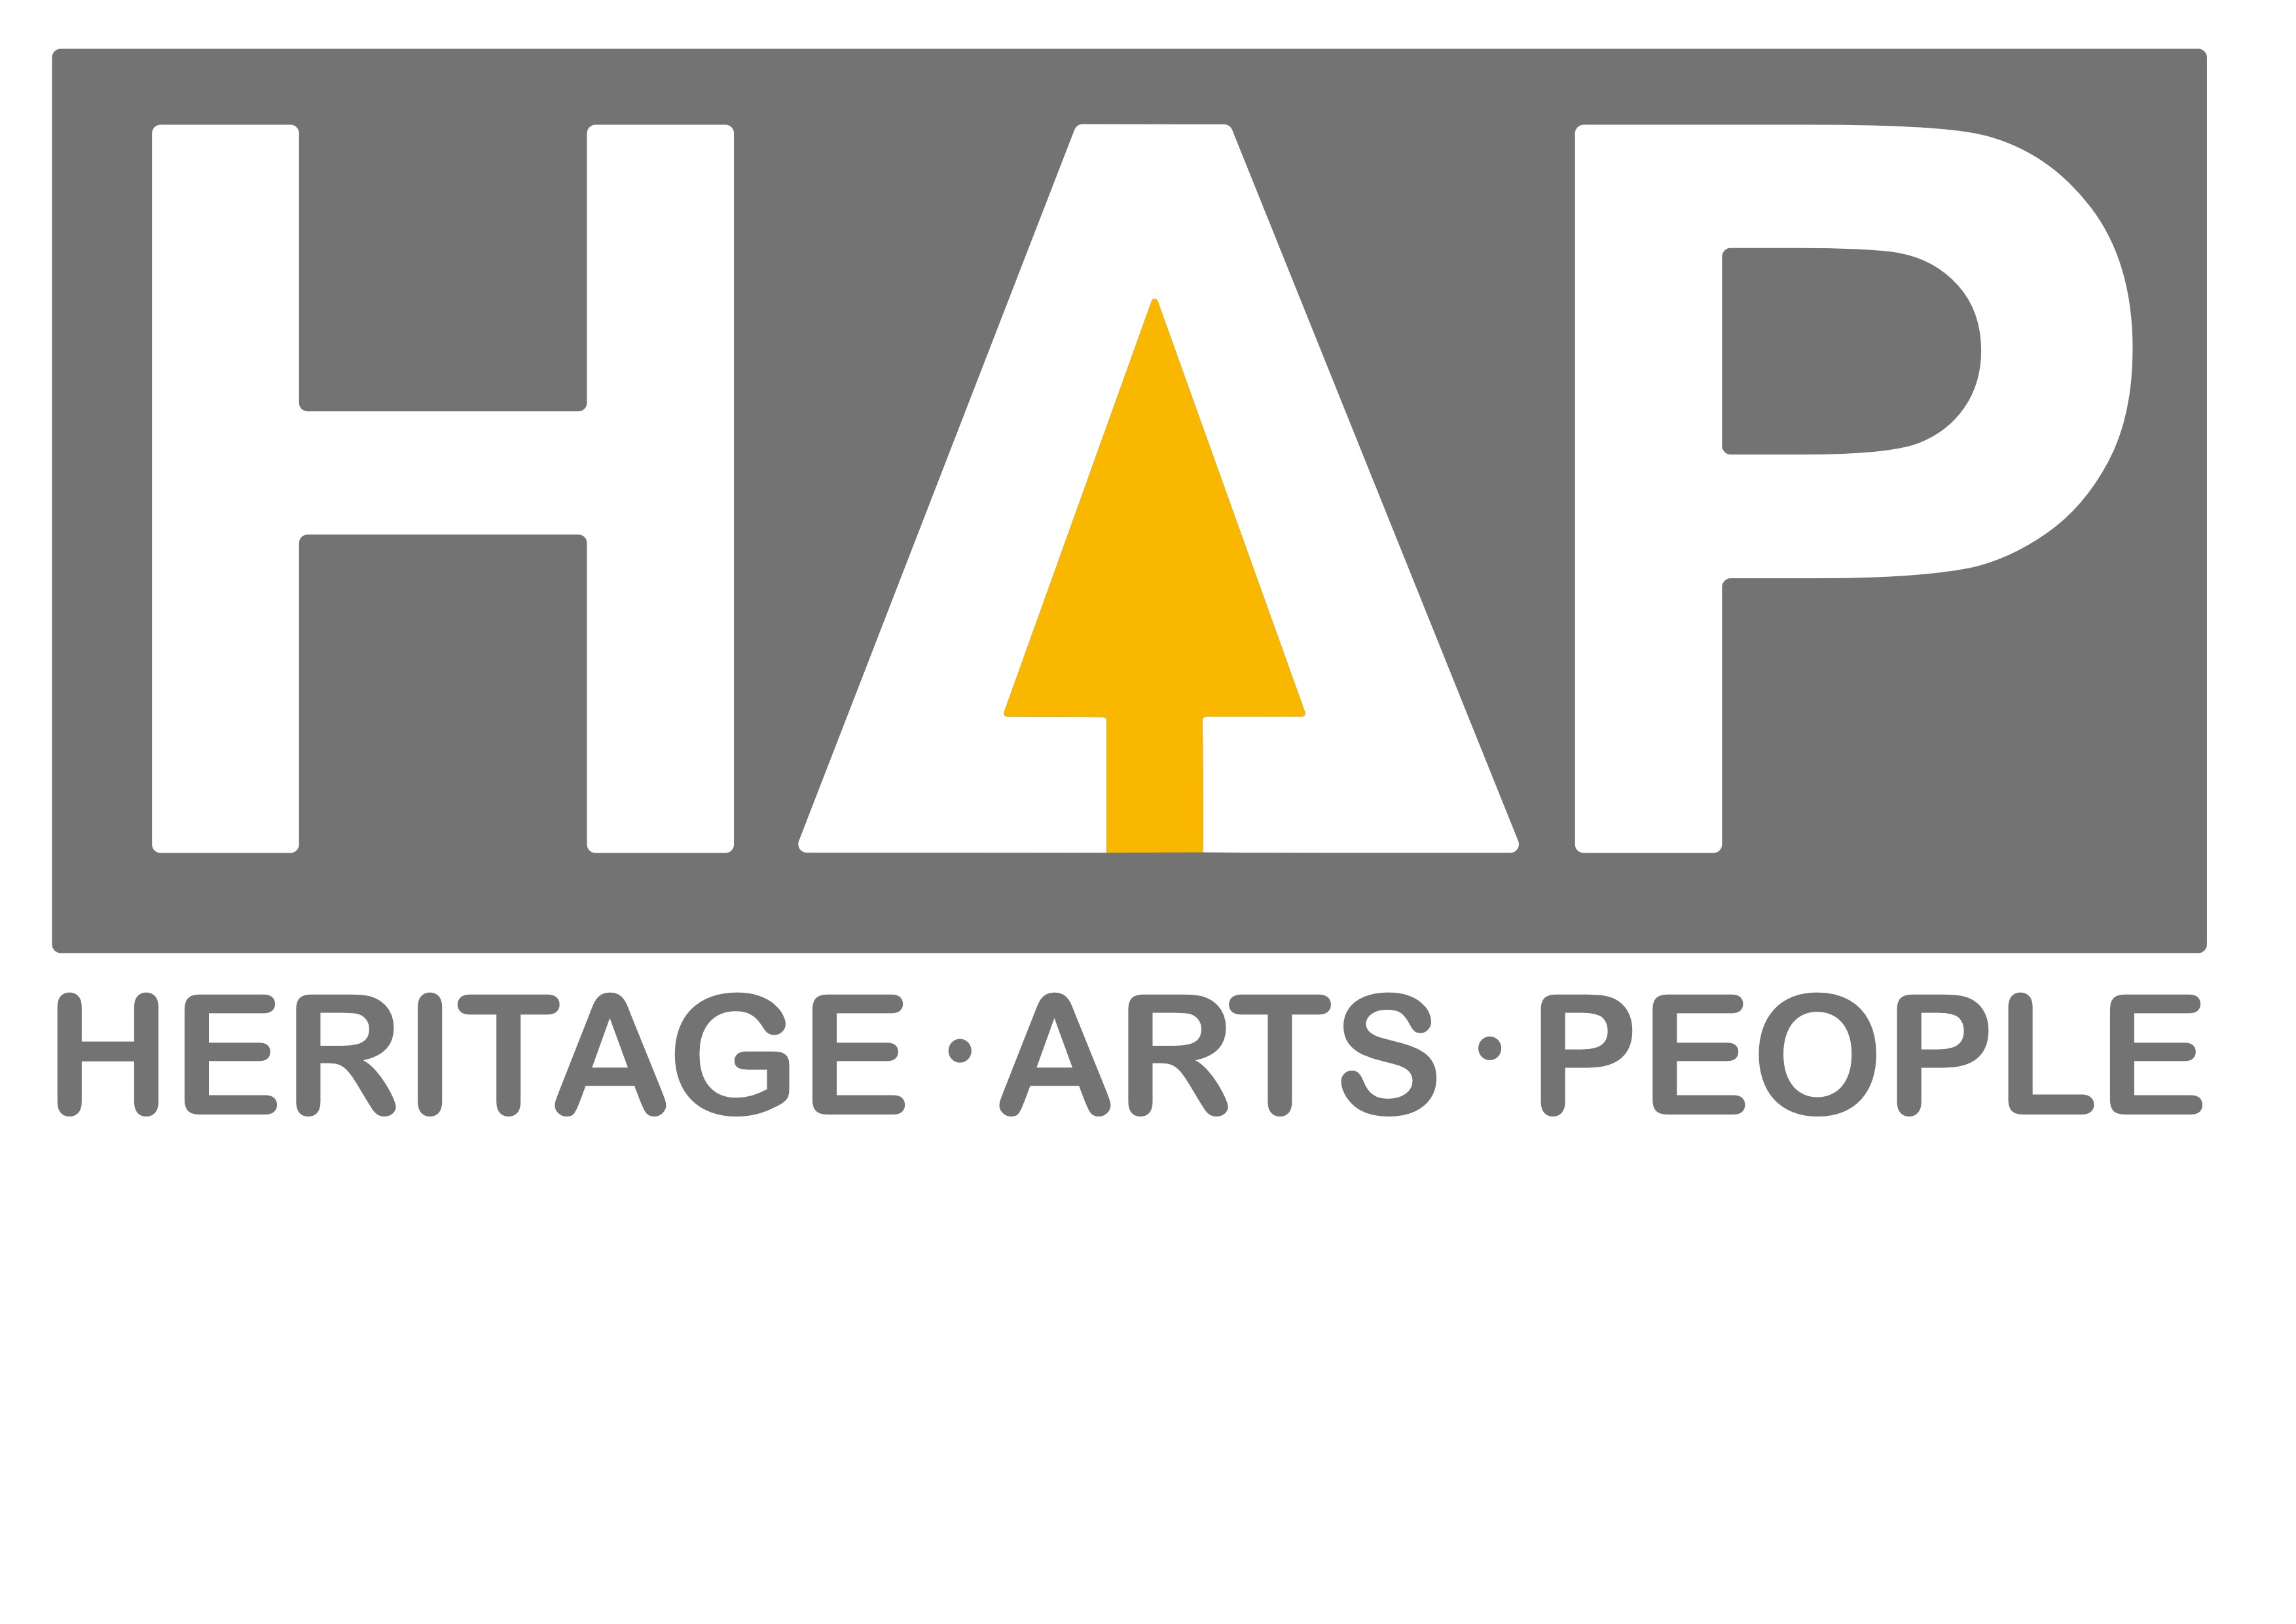 Heritage Arts People